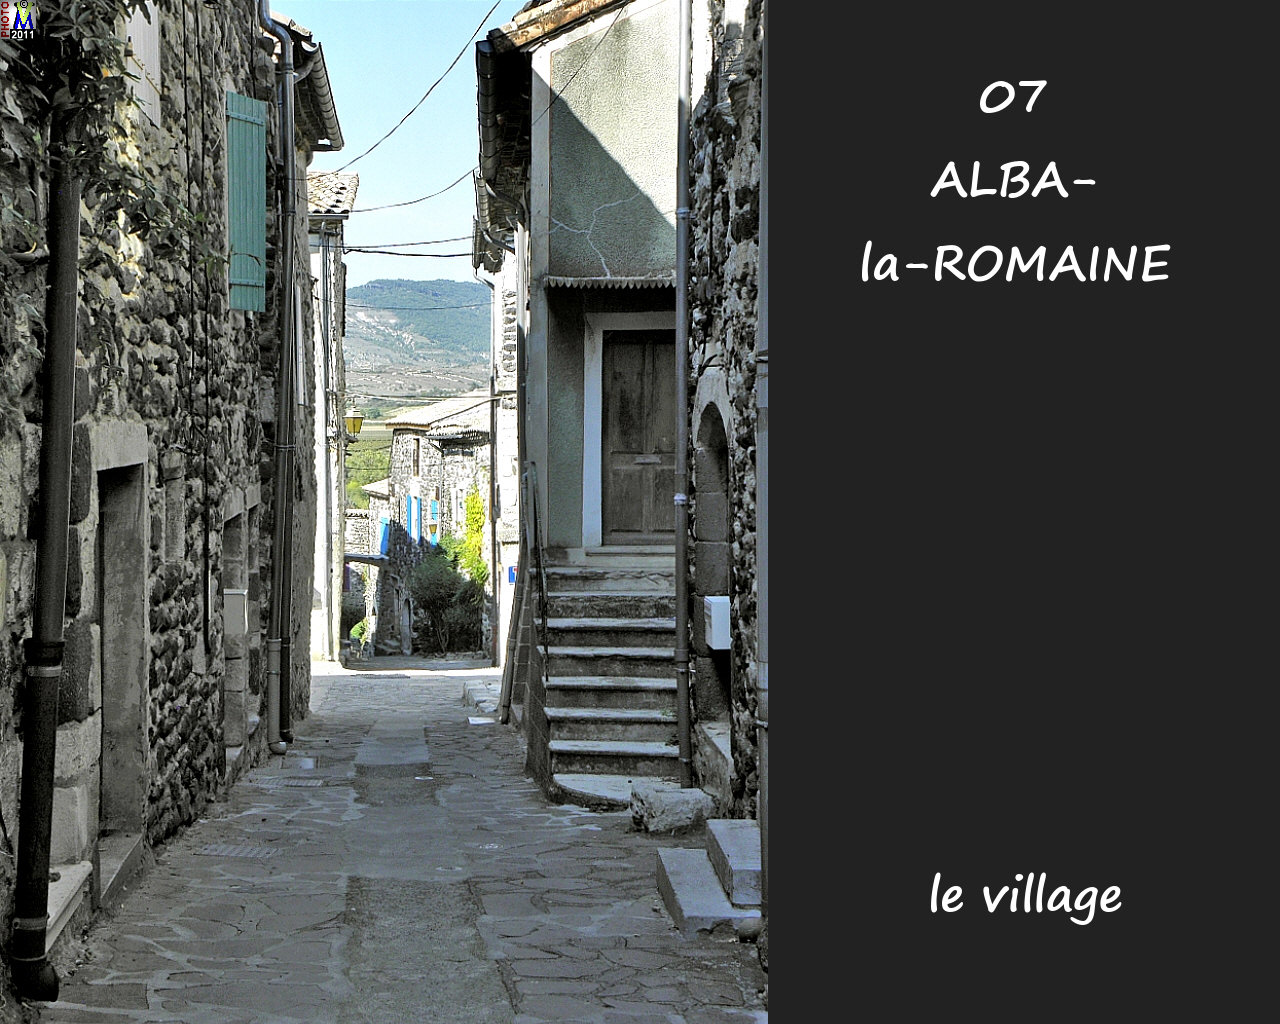 07ALBA-ROMAINE_village_110.jpg